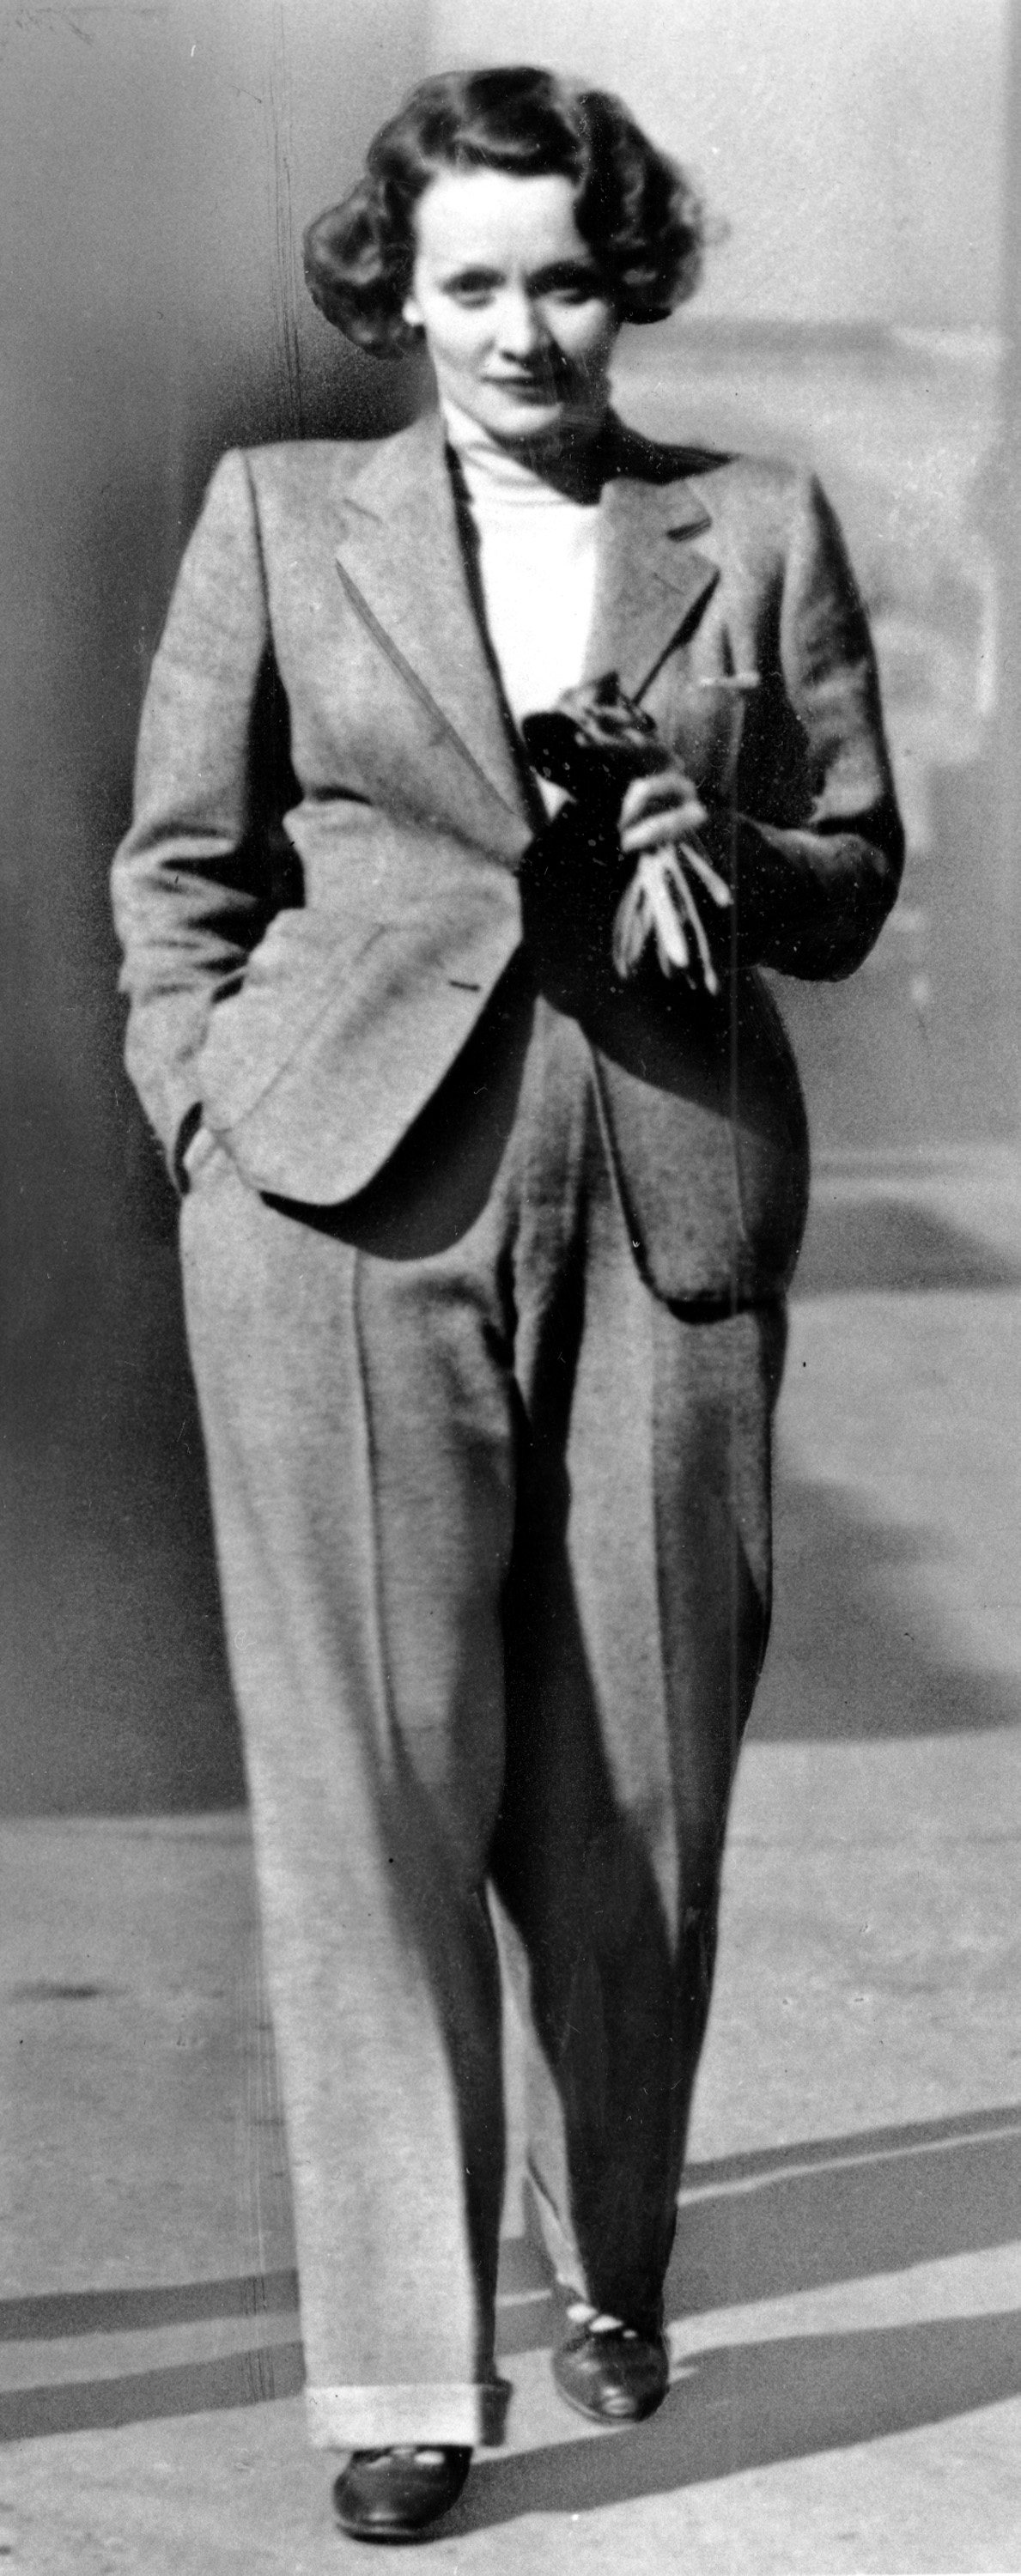 Actress Marlene Dietrich wears a trendsetting masculine style pant suit created by French couturiere Coco Chanel in 1933 at an unknown location.